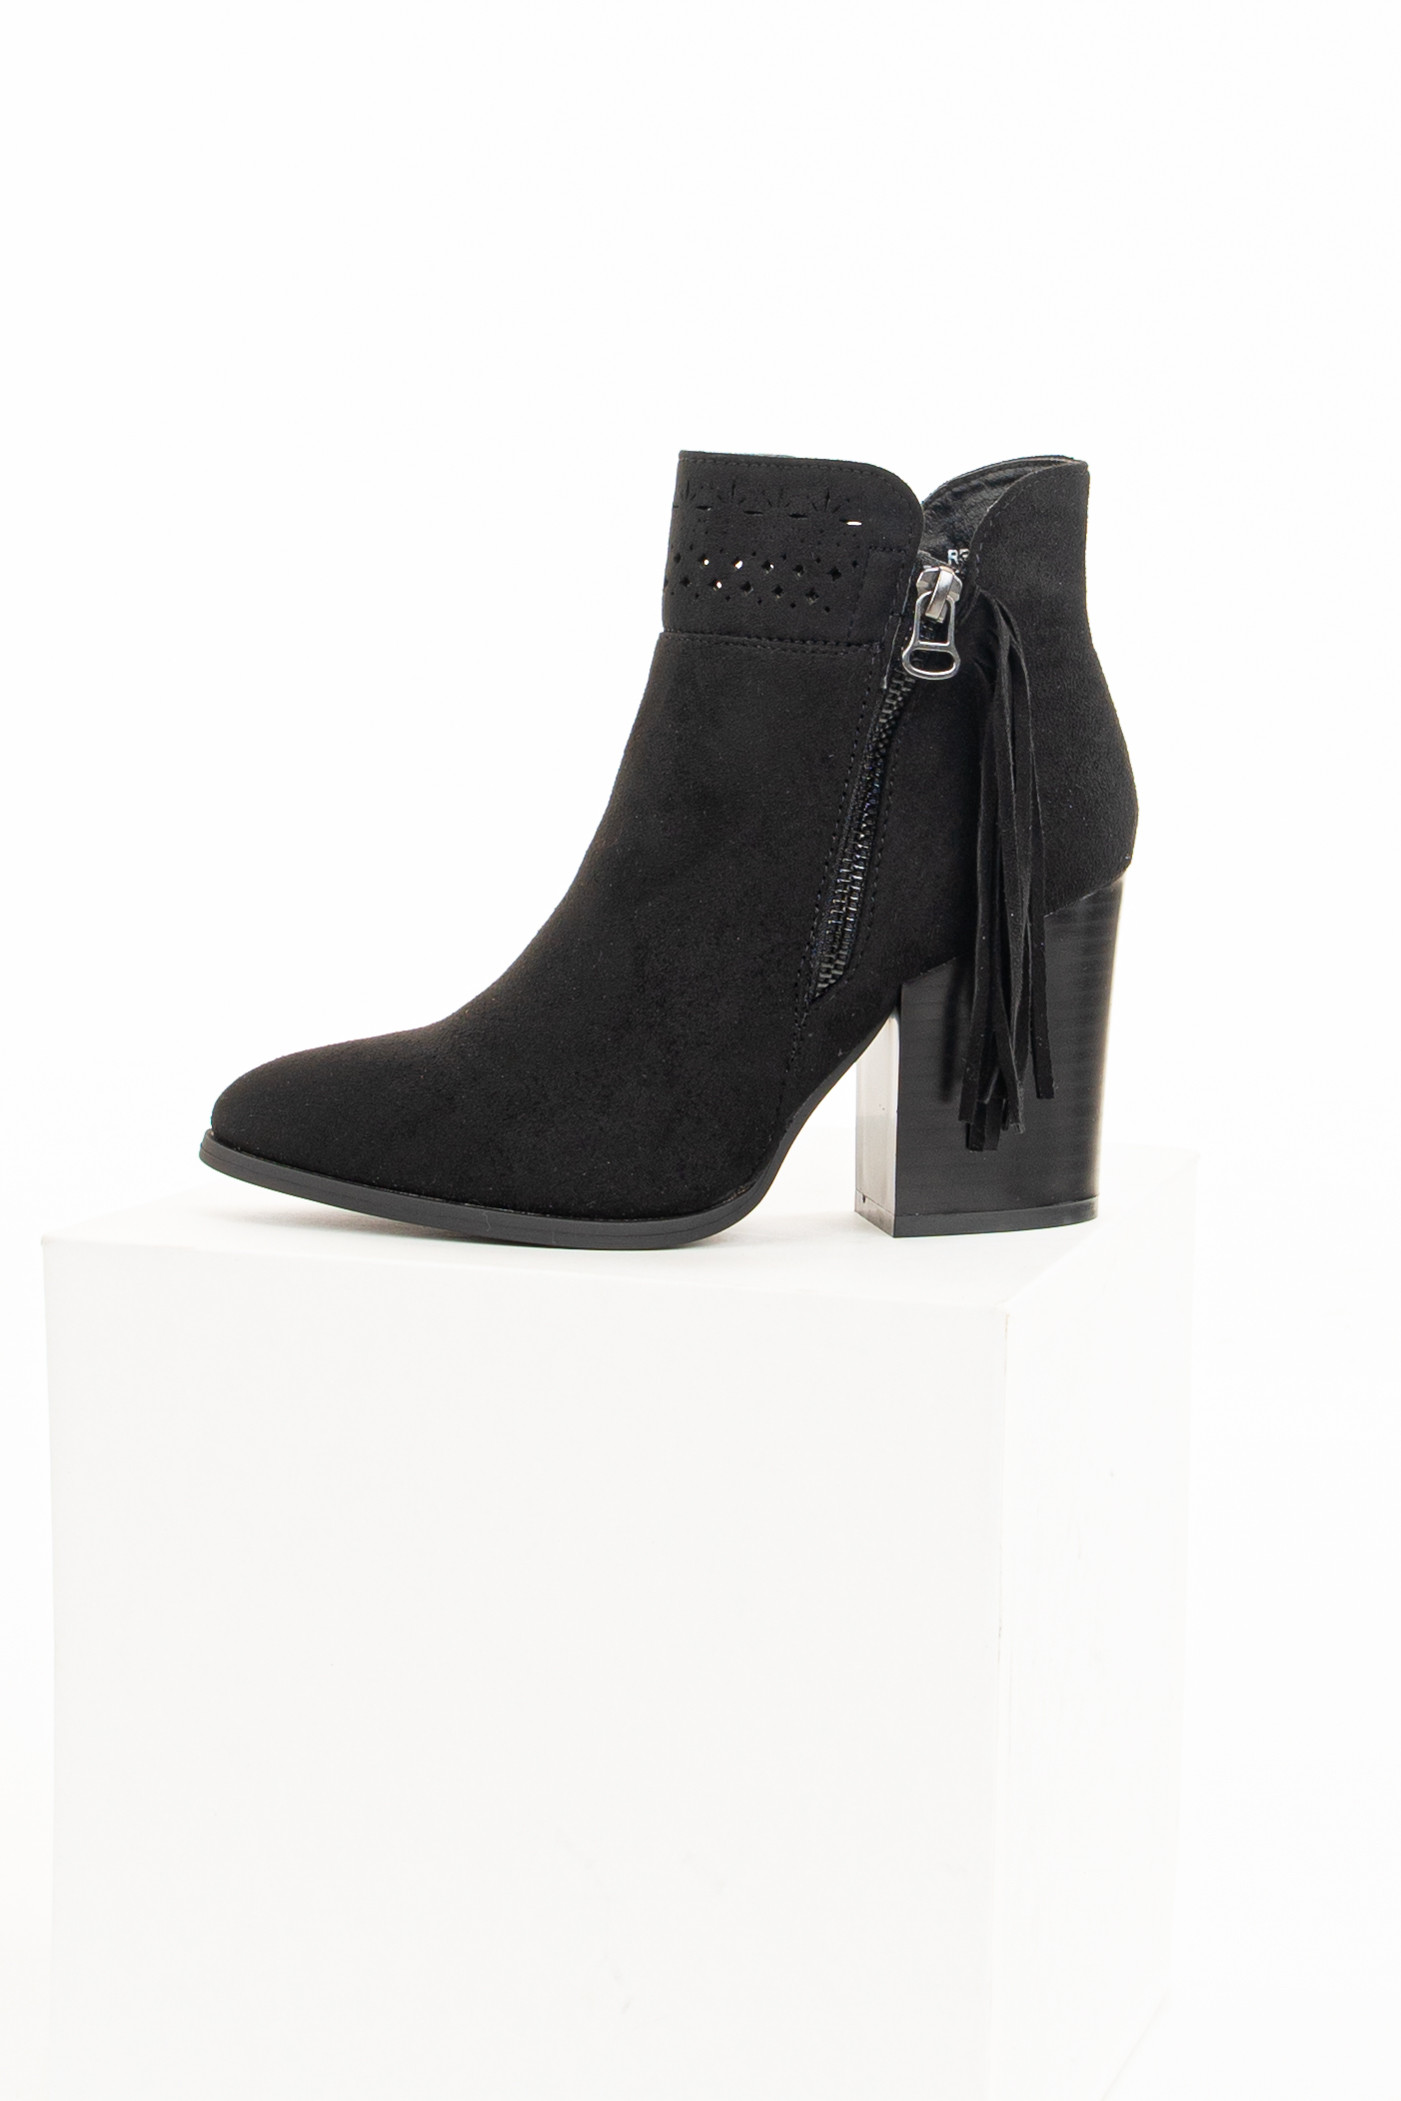 Black High Heel Booties with Tassel and Perforated Details